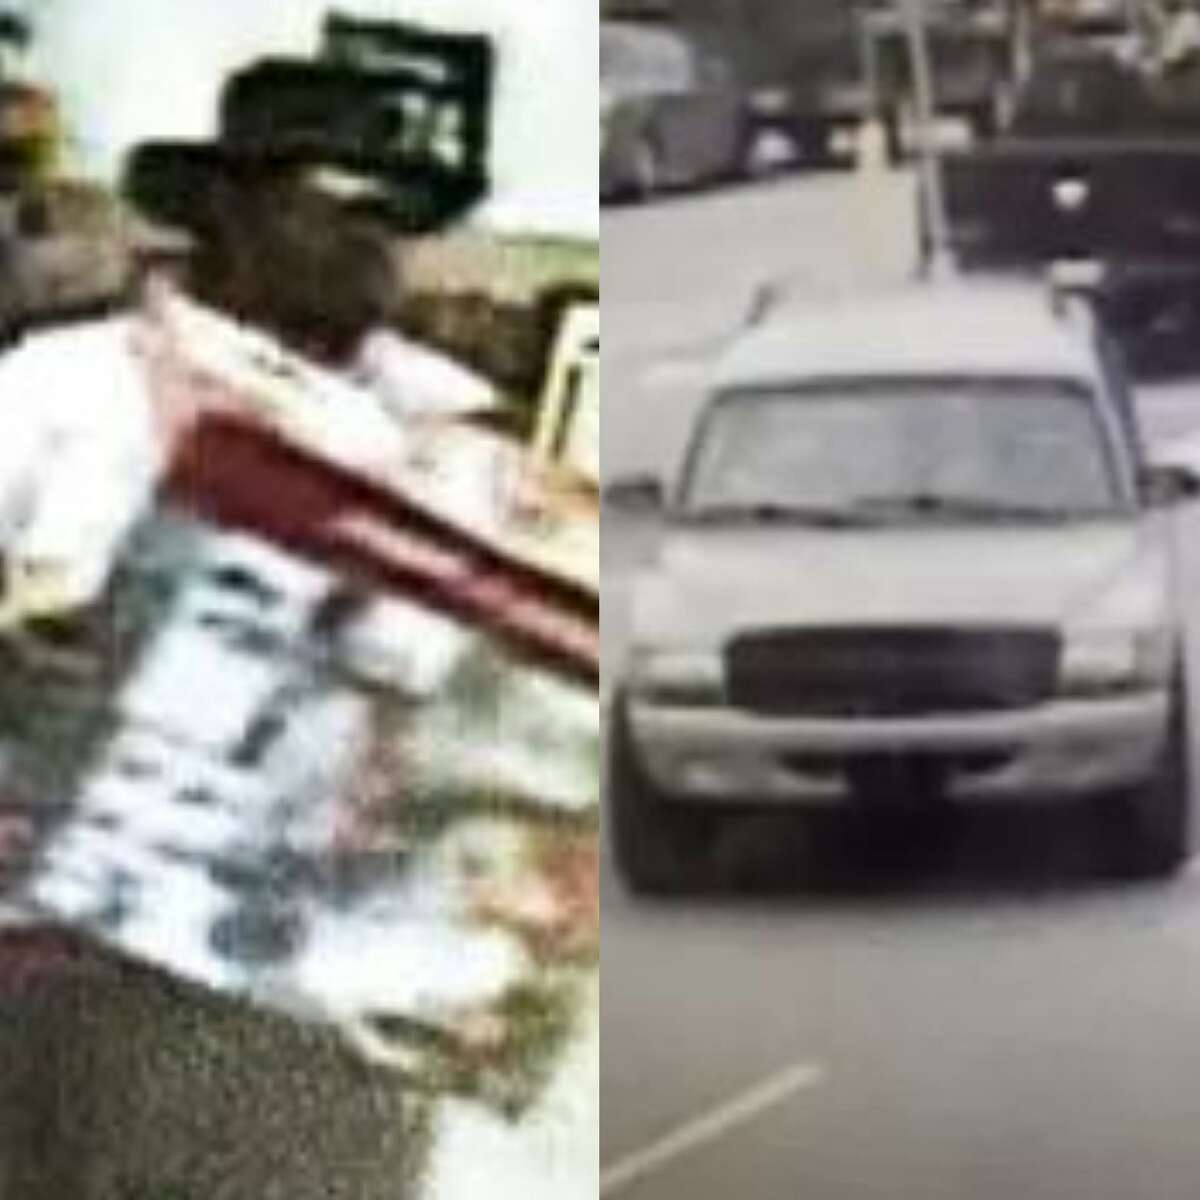 A man is seen on surveillance footage walking out of a Walmart with allegedly unpaid merchandise. He was seen leaving in the pictured vehicle.